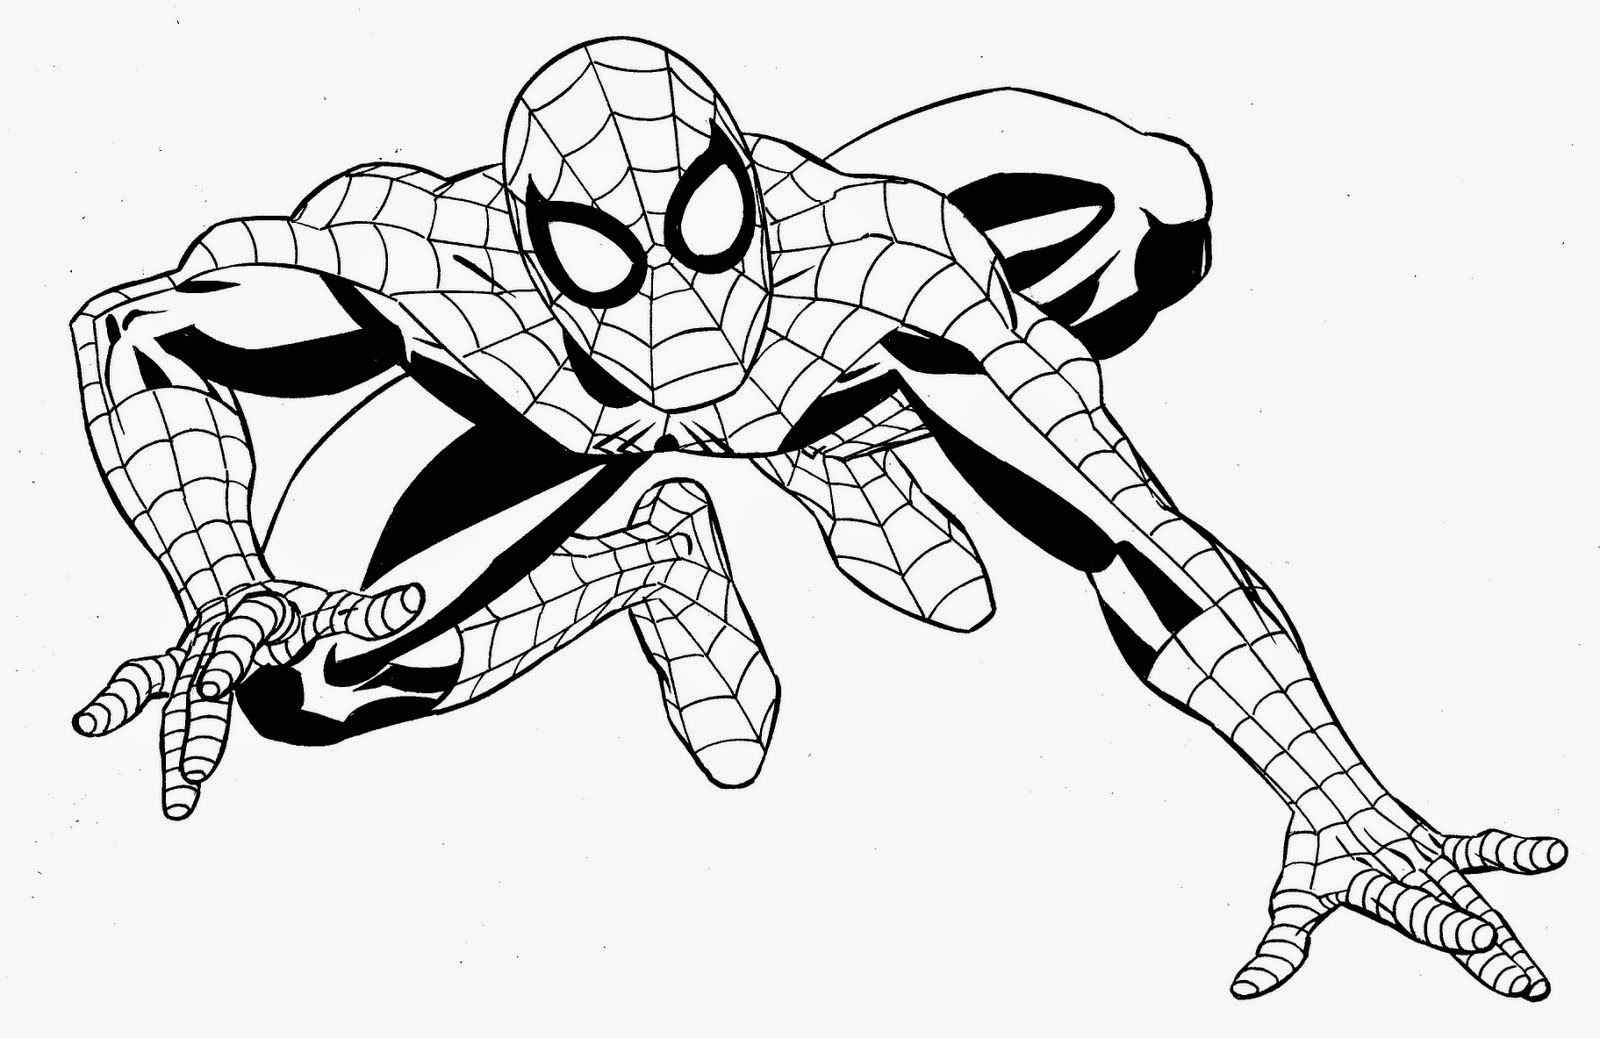 coloring pages for kids super heros coloring pages superhero coloring pages free and printable coloring heros for kids super pages